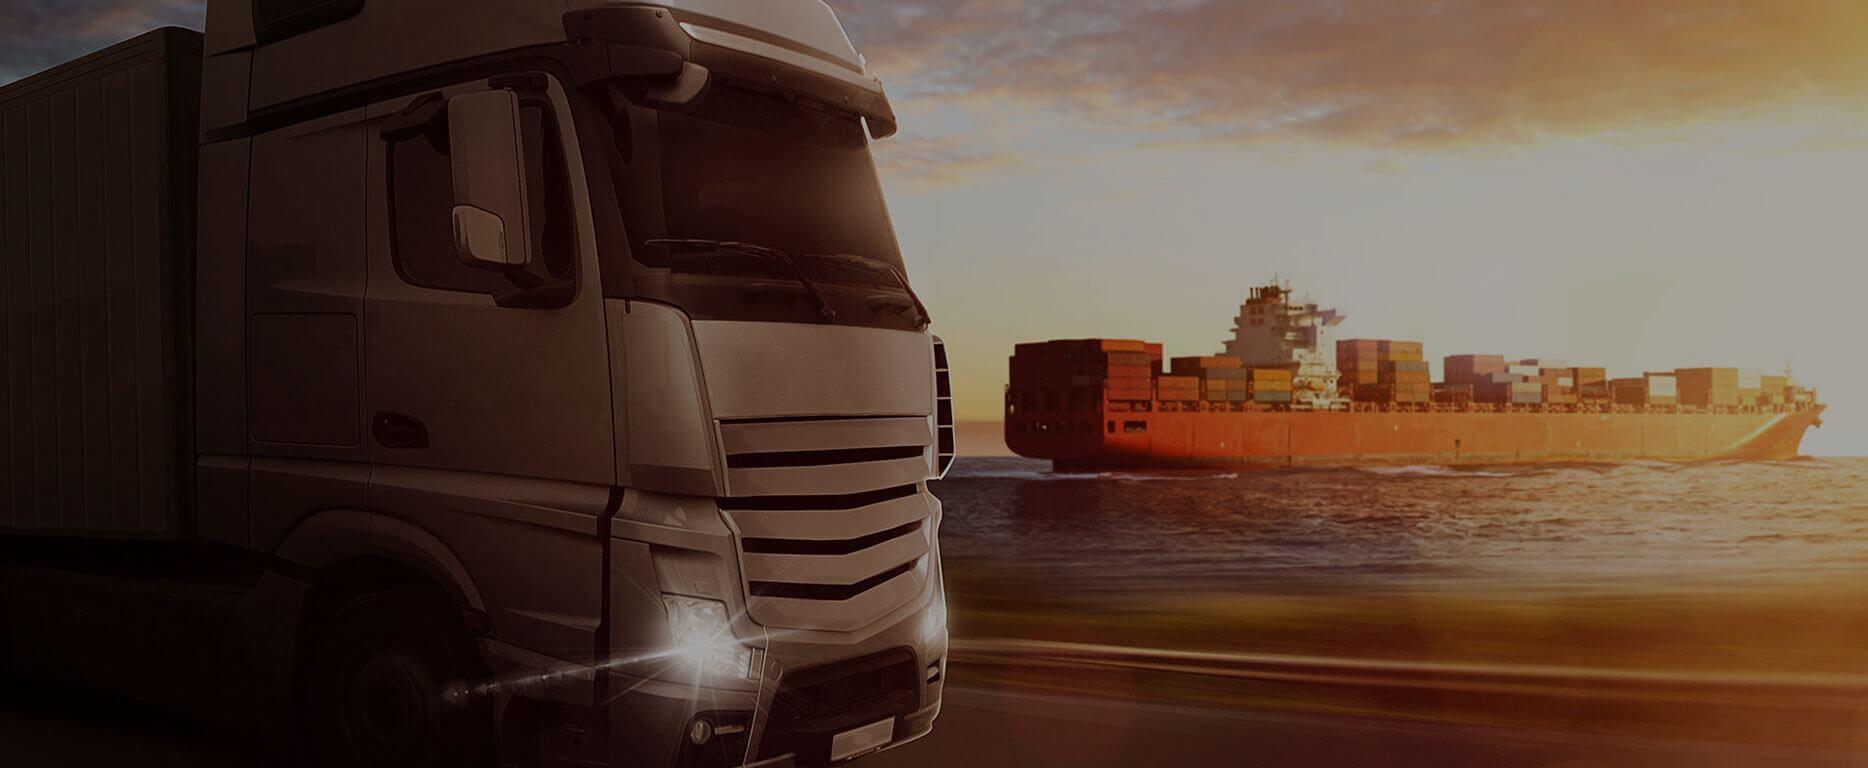 Customized Freight Forwarding Software To Optimize & Deliver